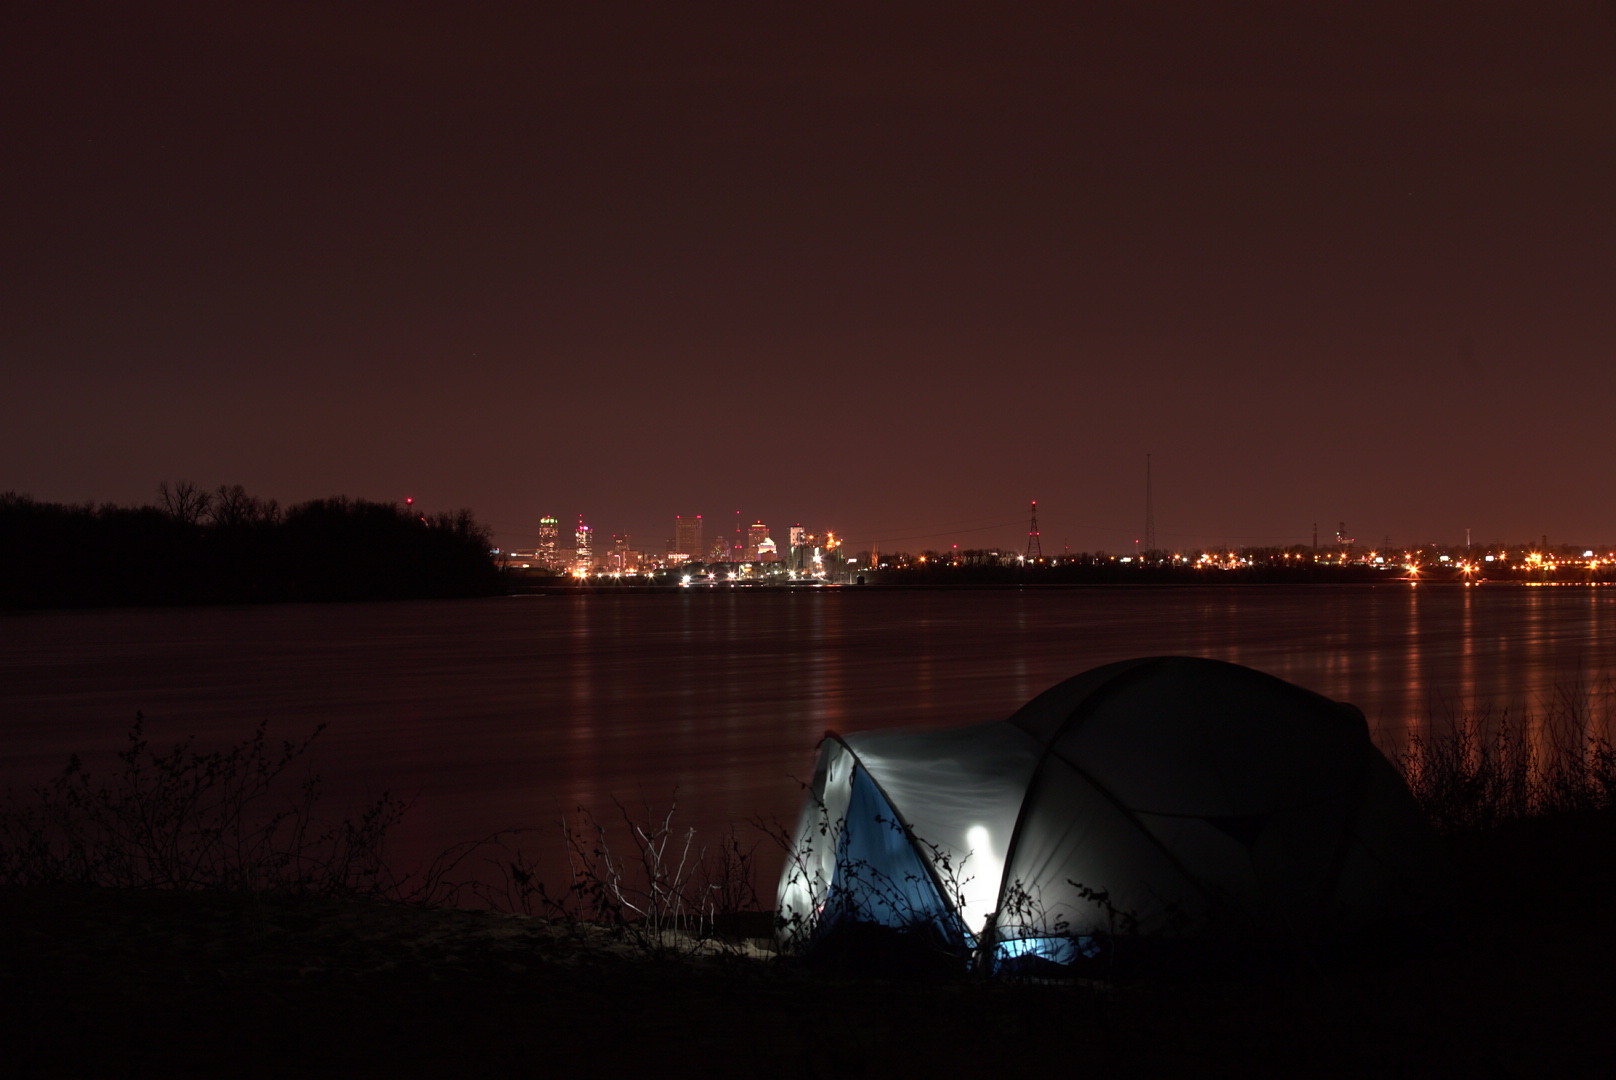 Campsite perched above the sands across a small stretch overlooking St. Louis.